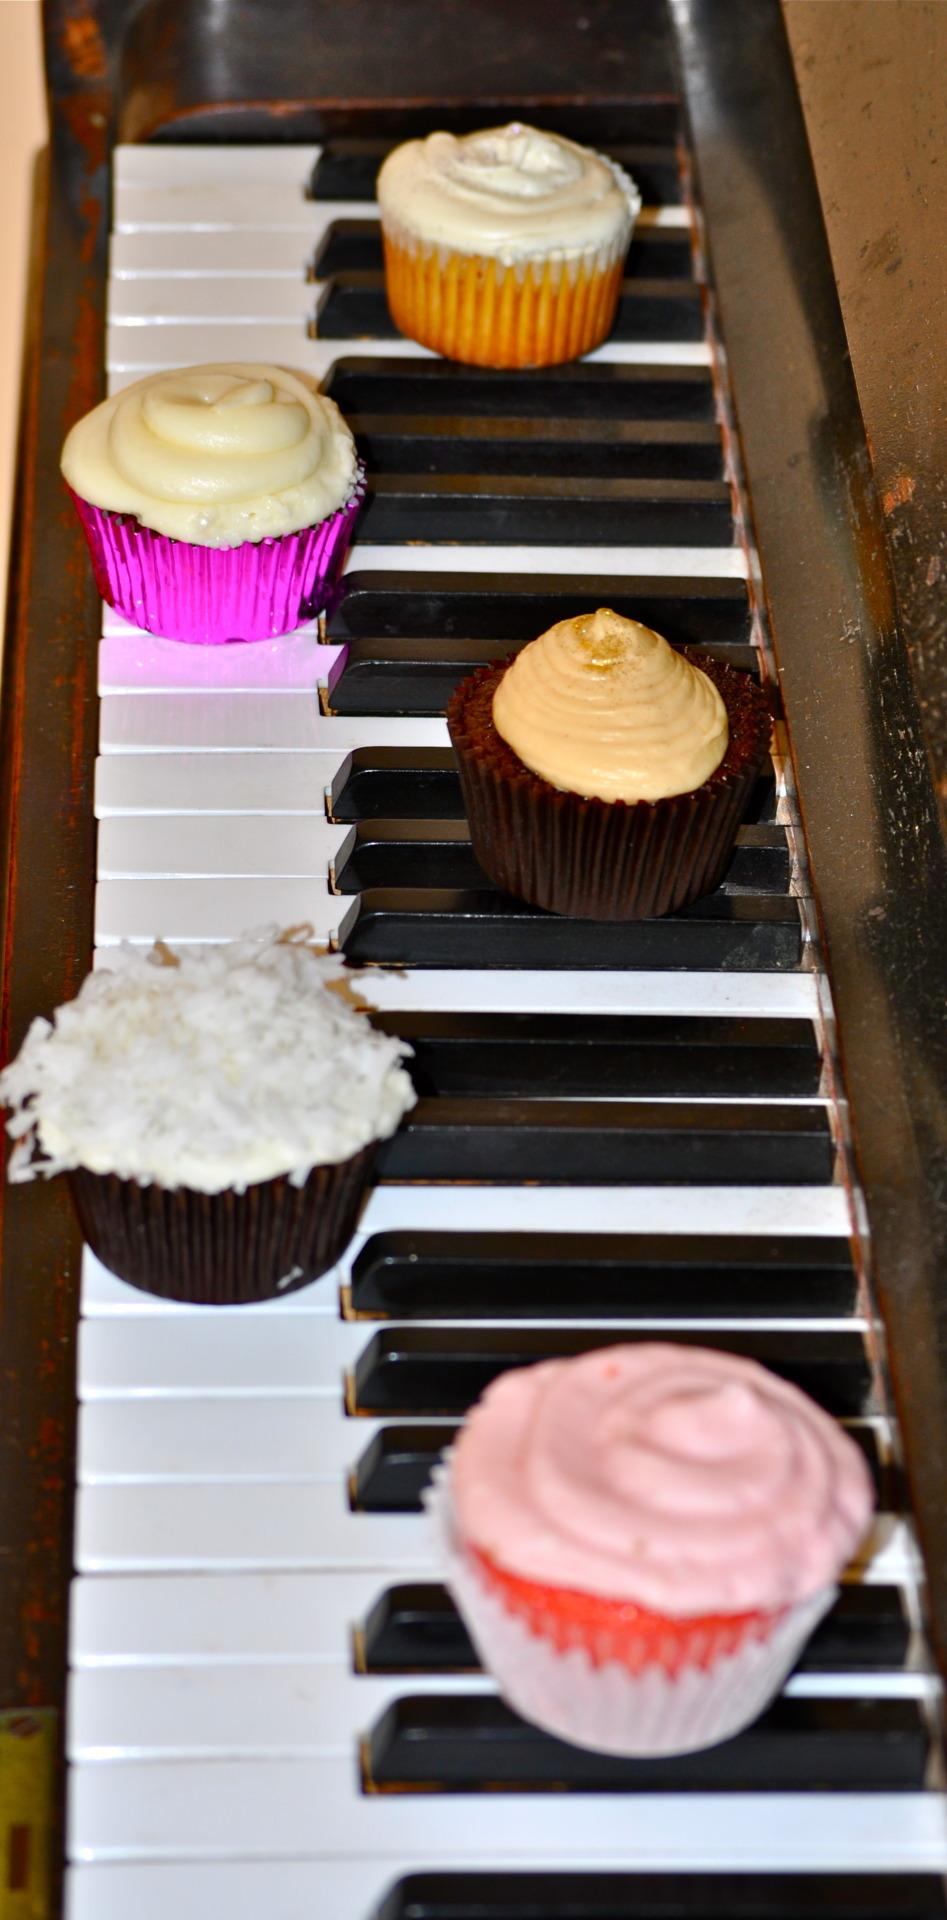 Variety (front to back): strawberry cupcakes, dark chocolate with coconut frosting, irish cream cupcake, red velvet, vanilla made by: Maura Bogni-Rodriguez photographed by: Audrey Jonoubeh